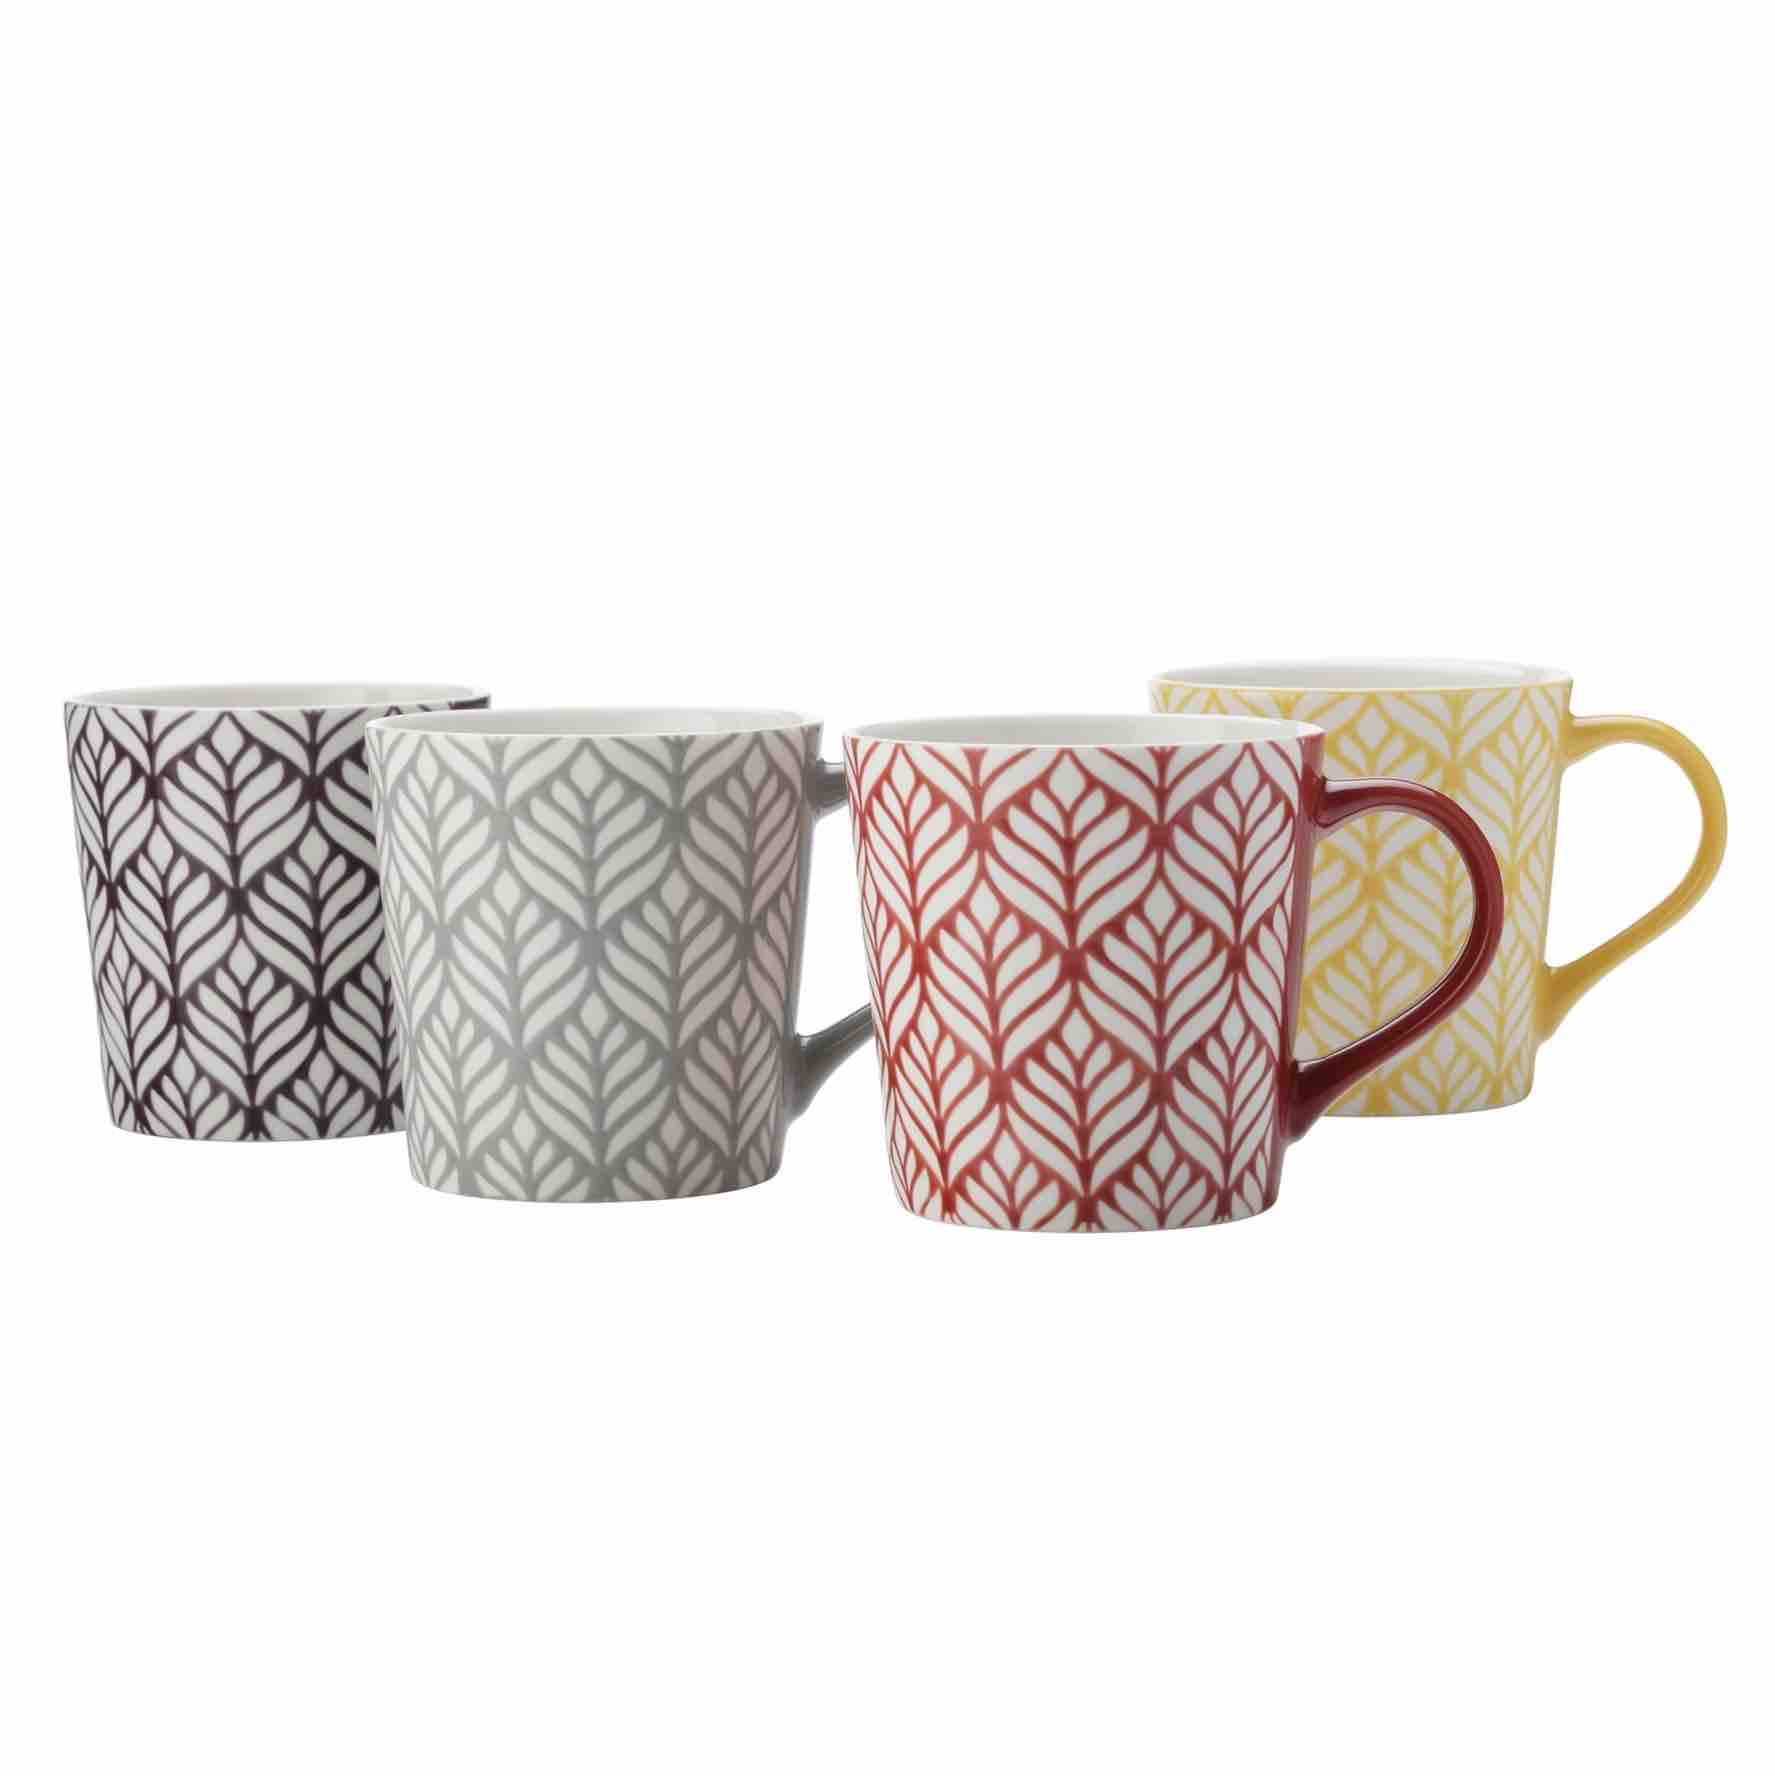 Maxwell & Williams Moro Mugs | Set of 4